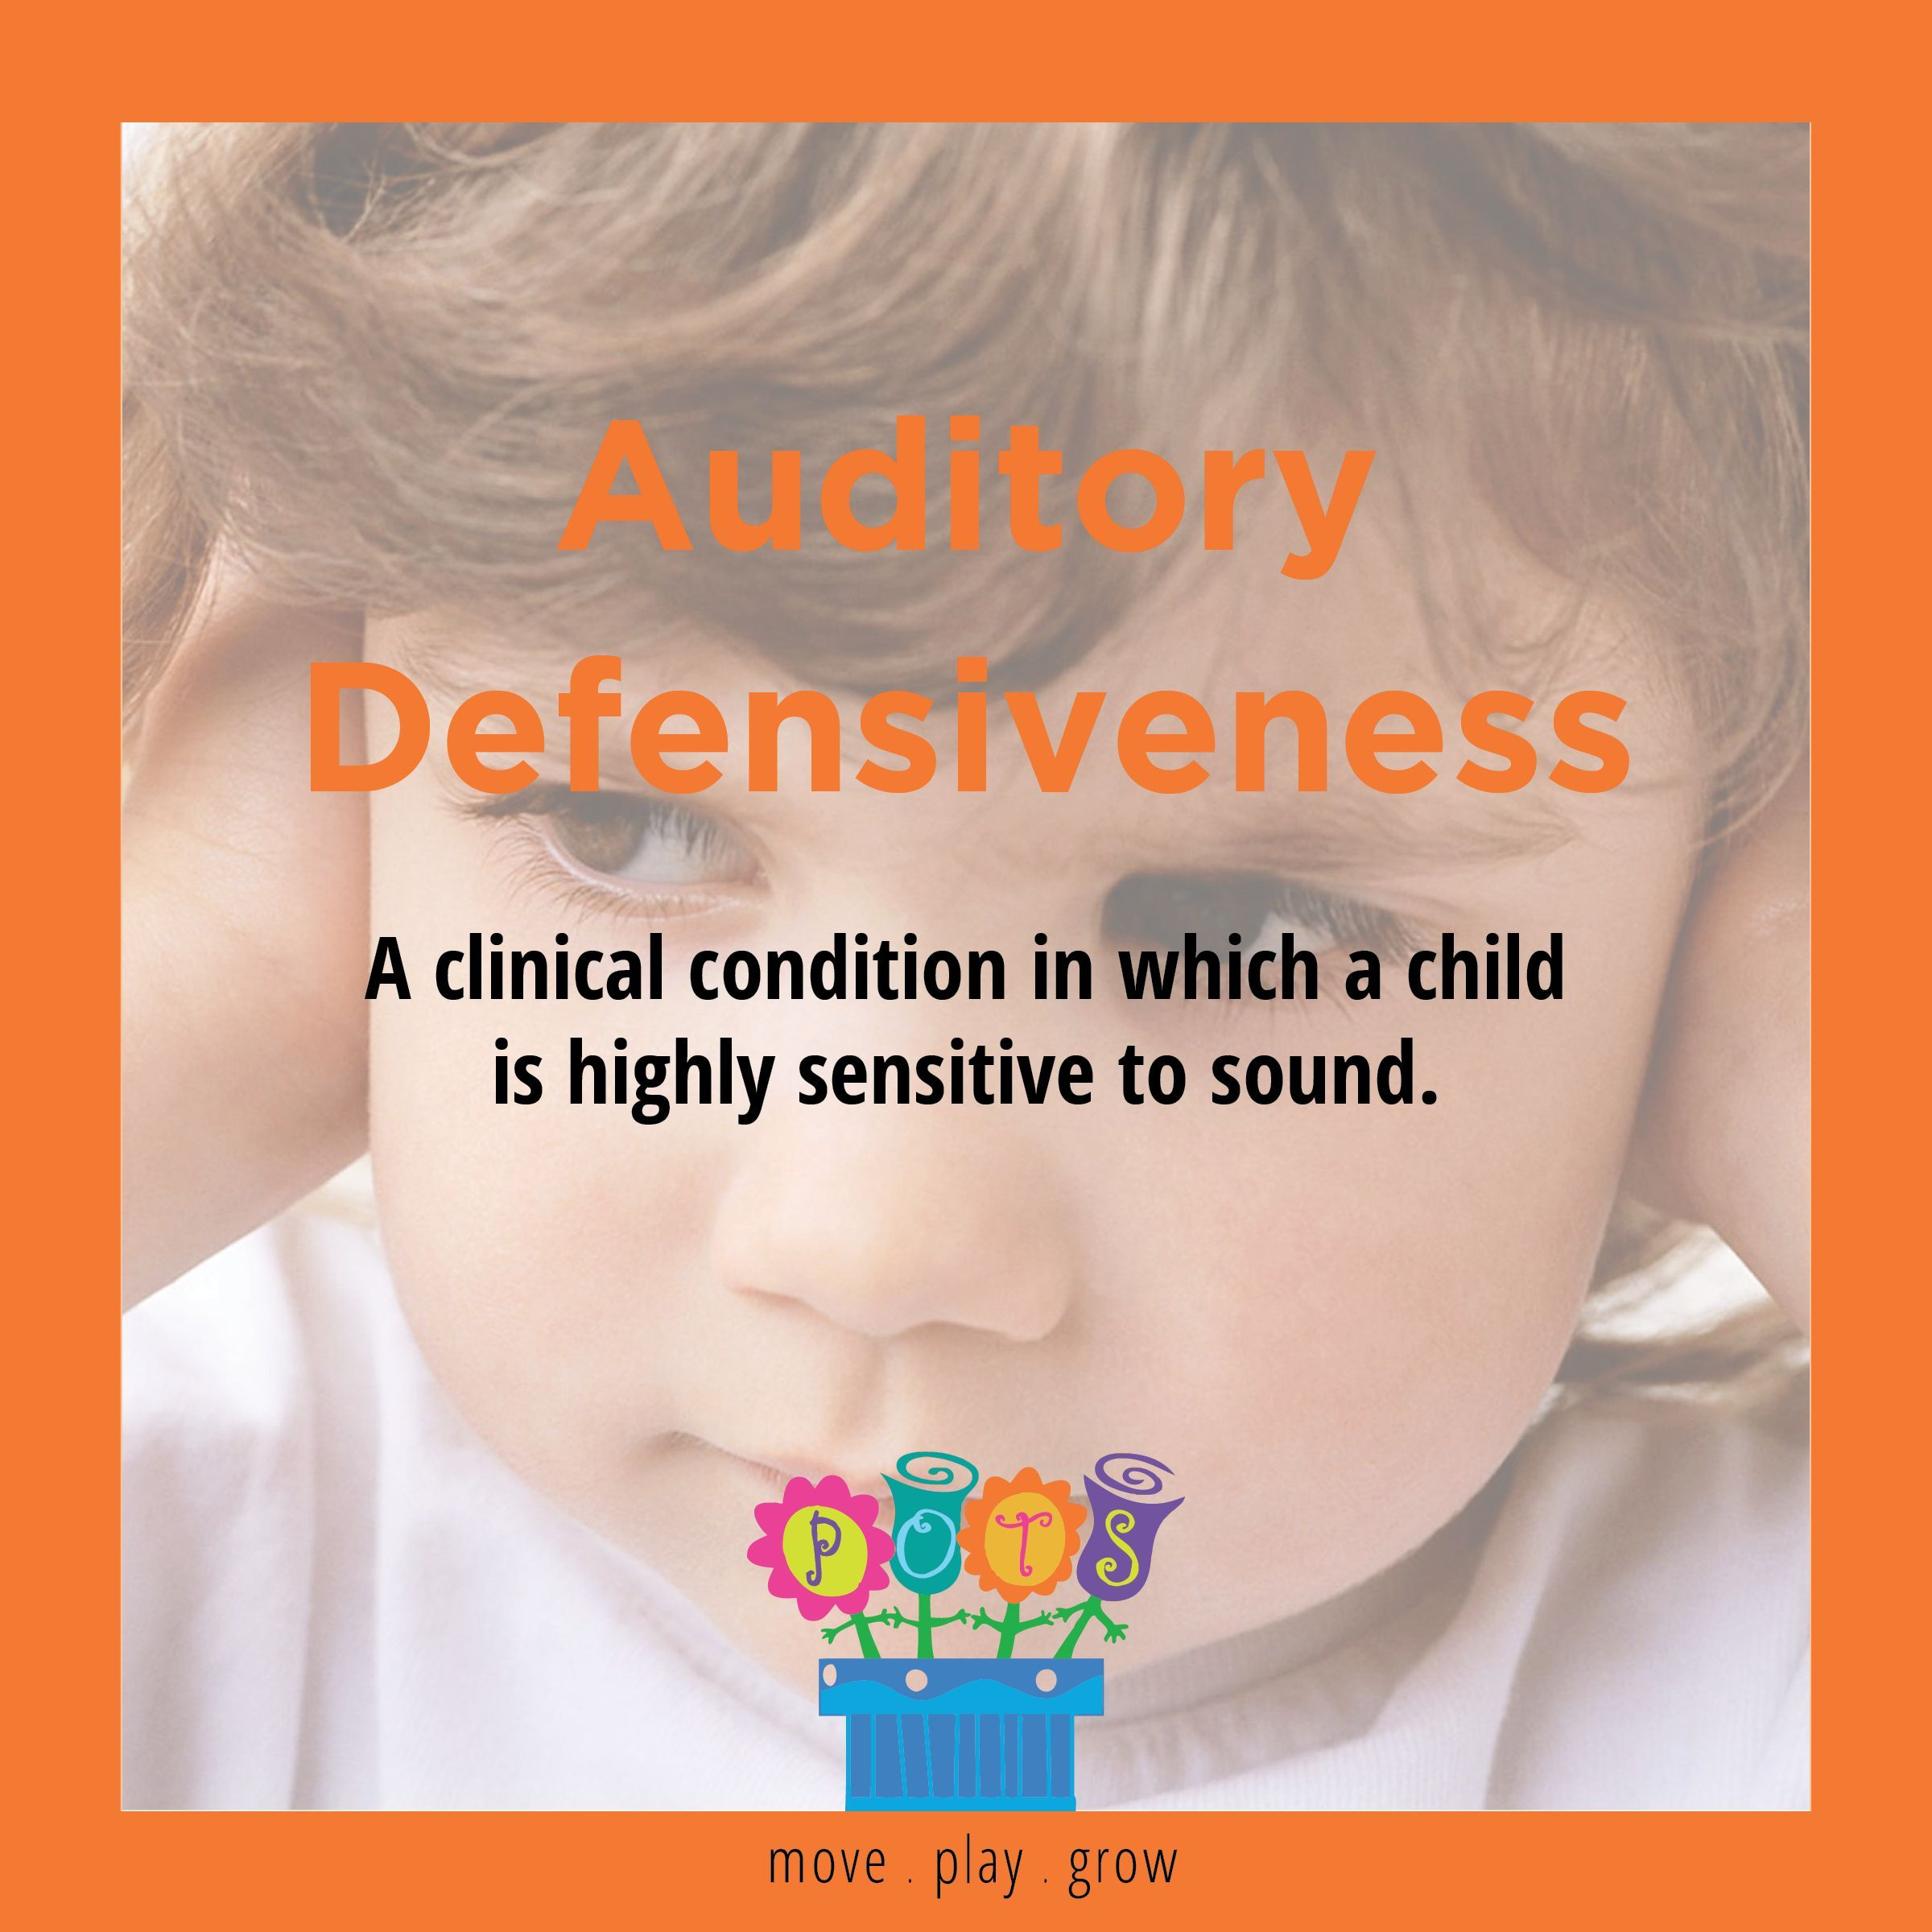 Auditory Defensiveness